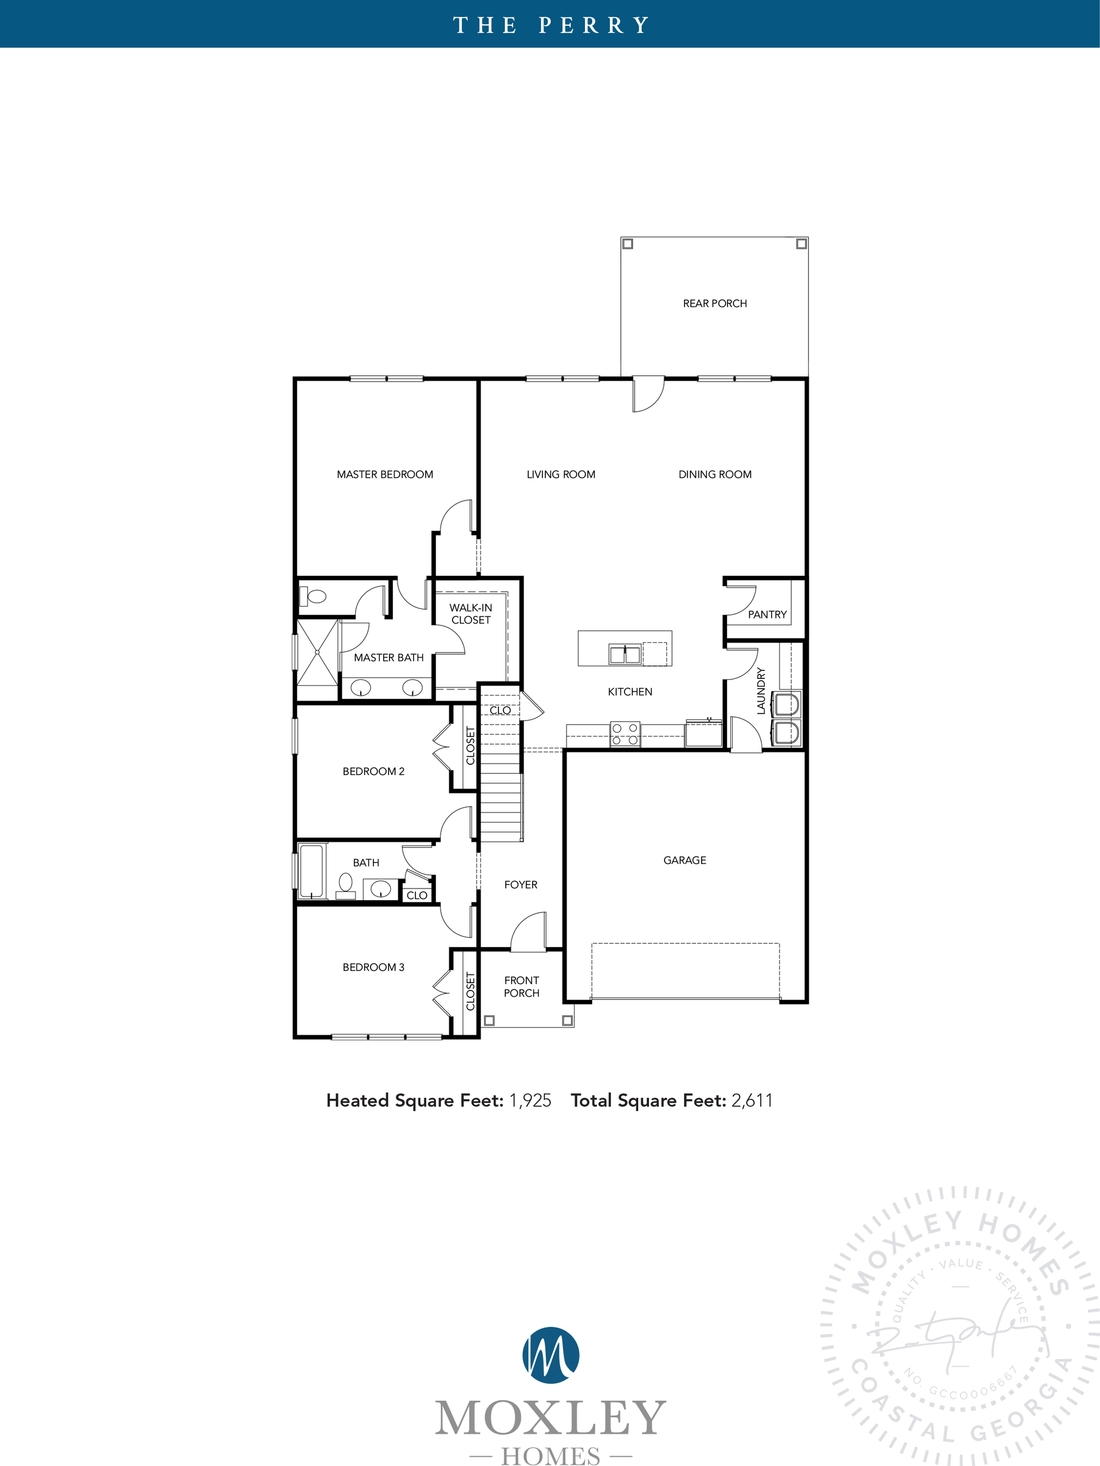 carriage gate plantation, grace crossing, The Perry floor plans